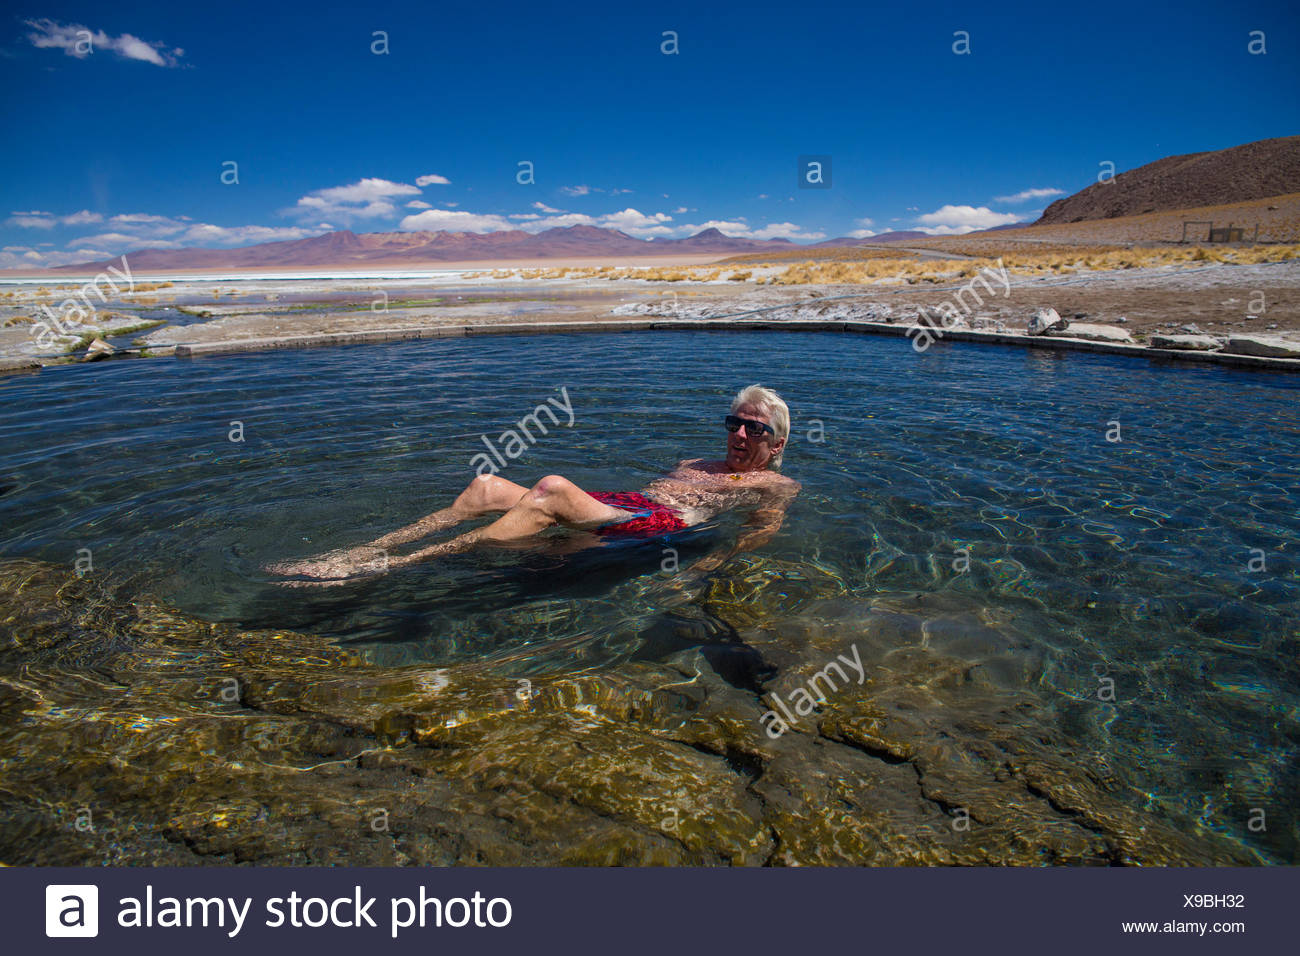 Thermal bath  in the Siloli Desert - Stock Image